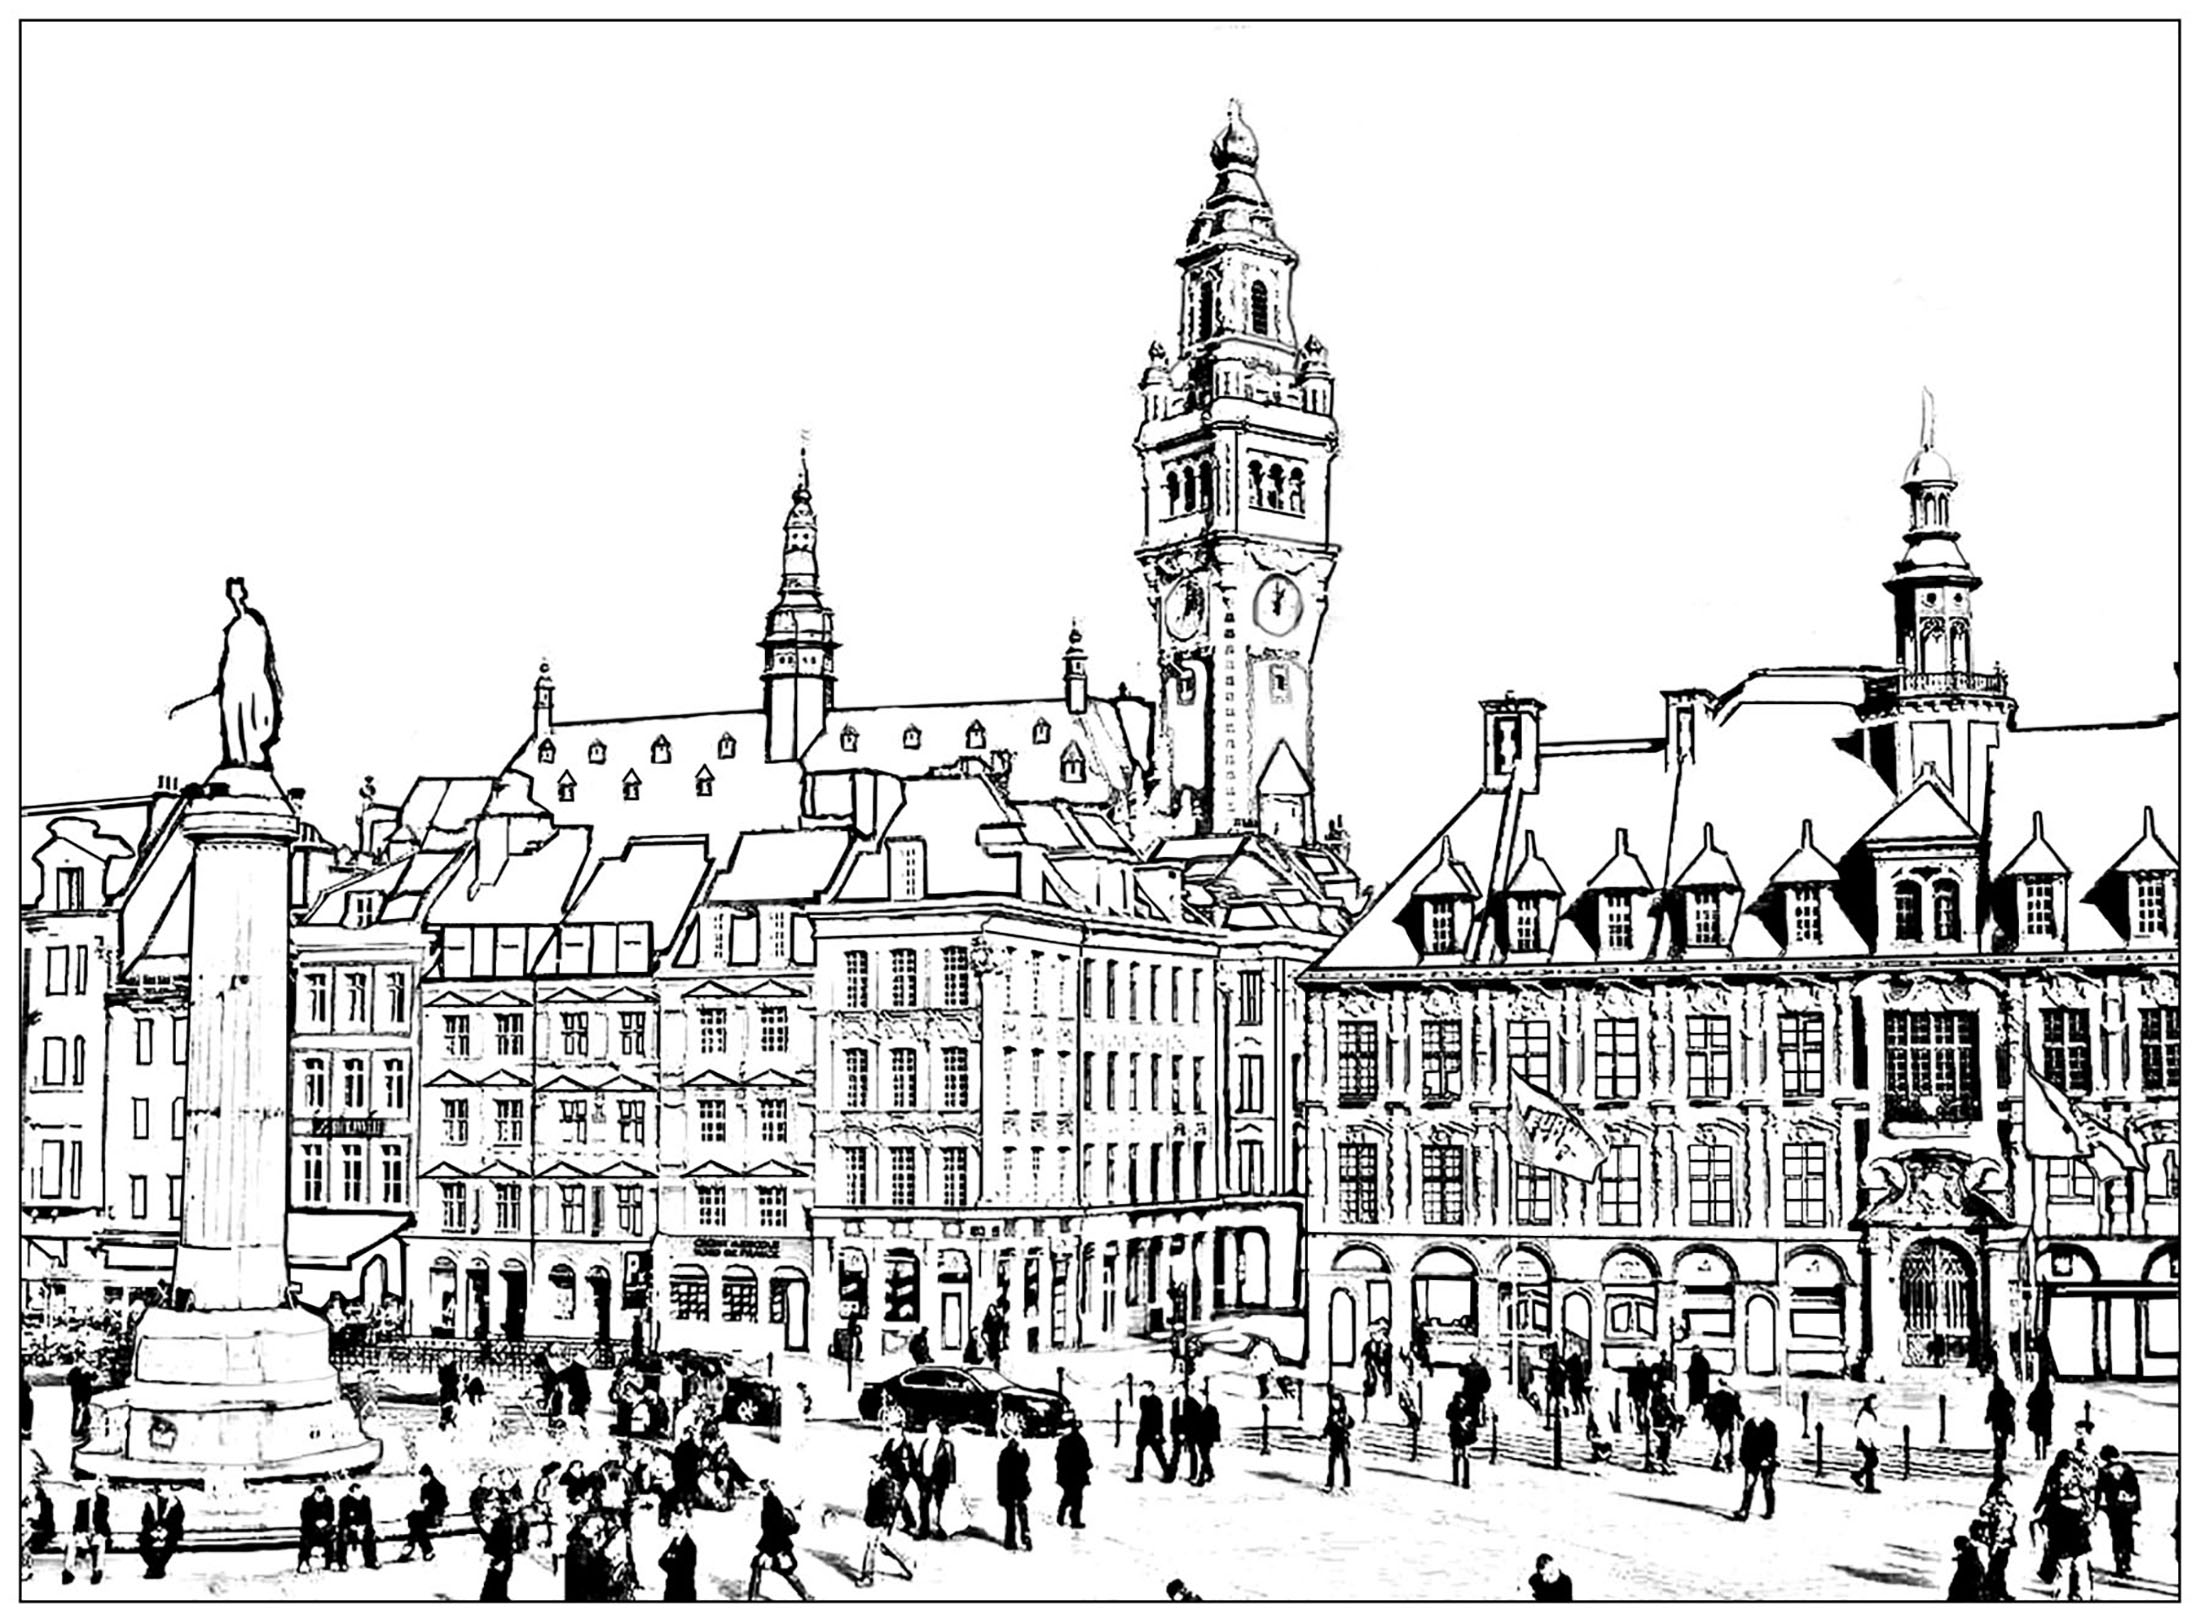 Coloring page of the City of Lille, in North of France